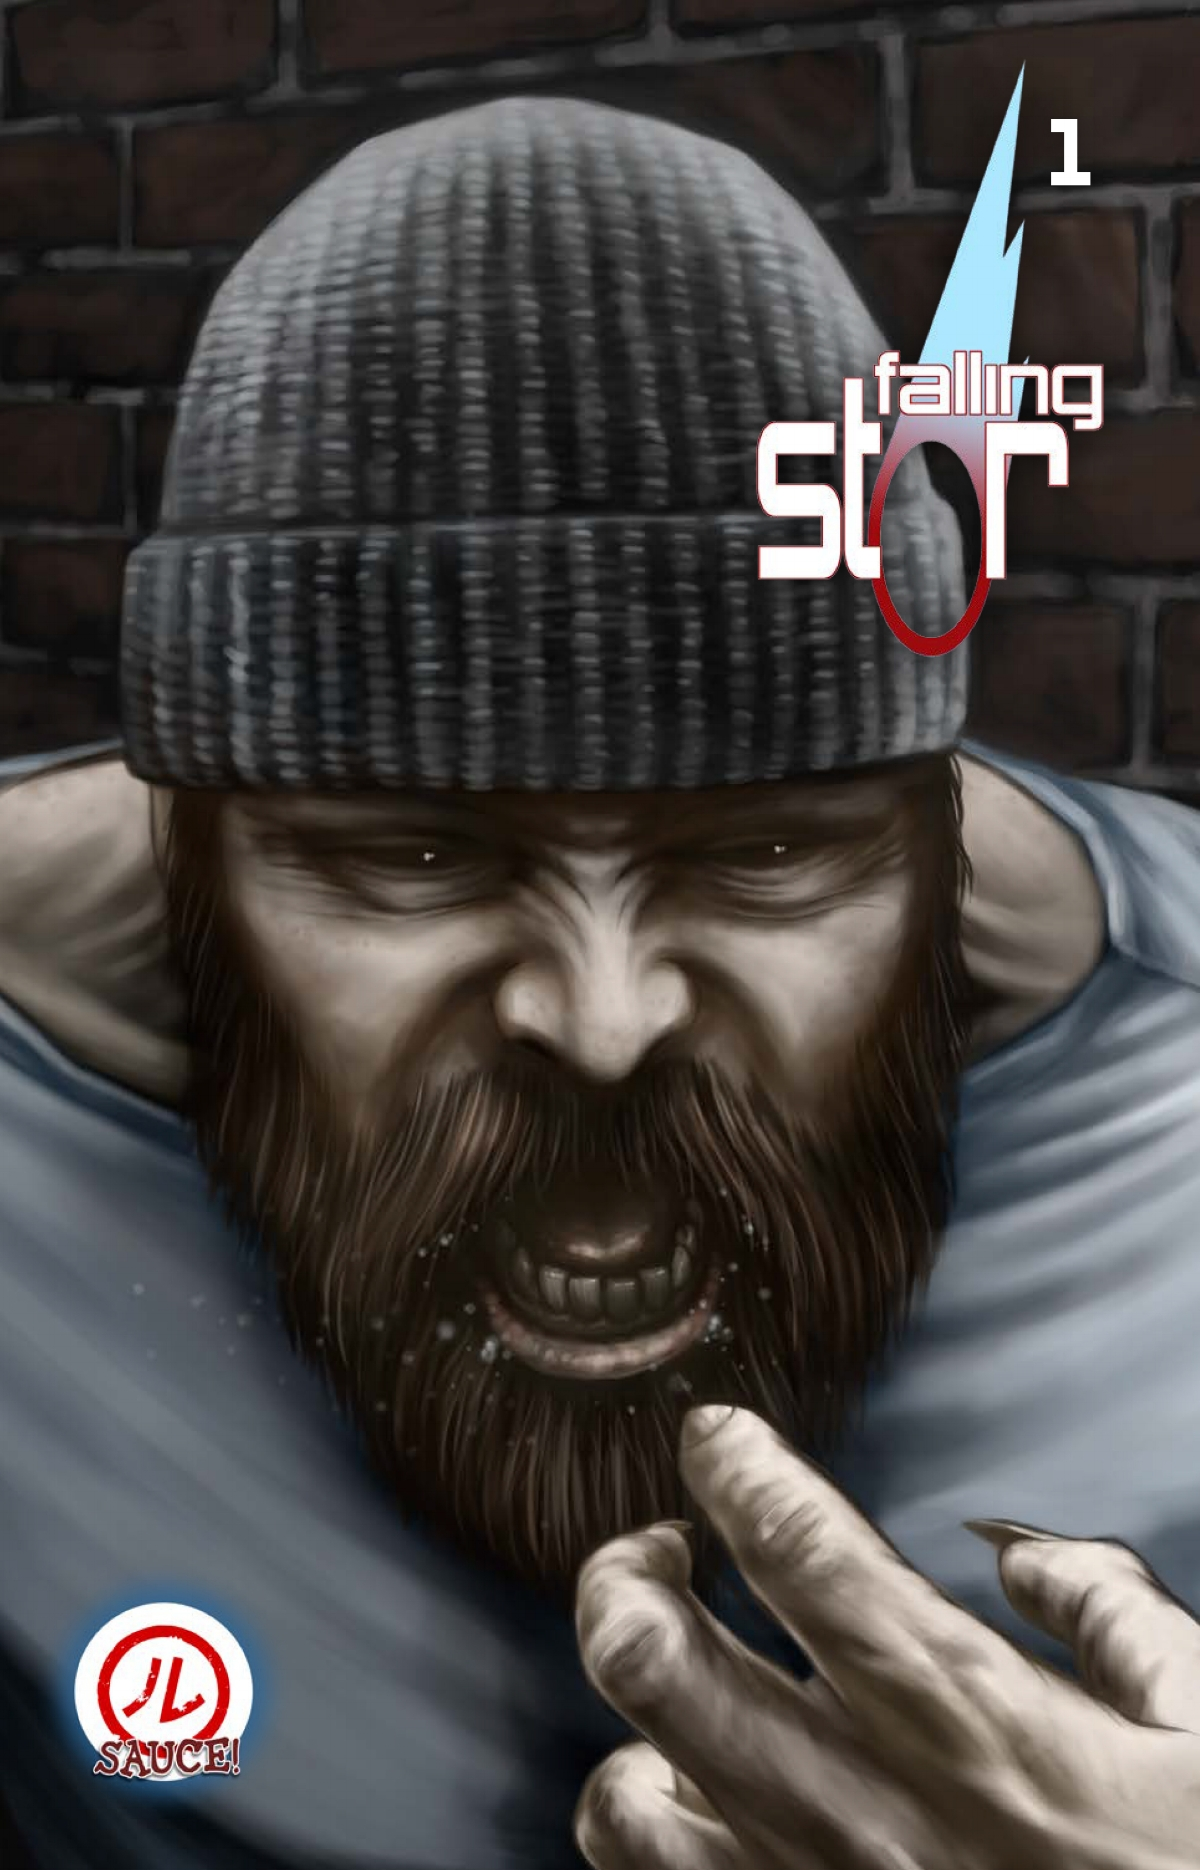 Cristian Roux  is the artist and writer of the comic  Falling Star , a modern mythology in the superhero vein. He is currently working on a historical detective story set in Melbourne in the late 1800s.  Find out more here.